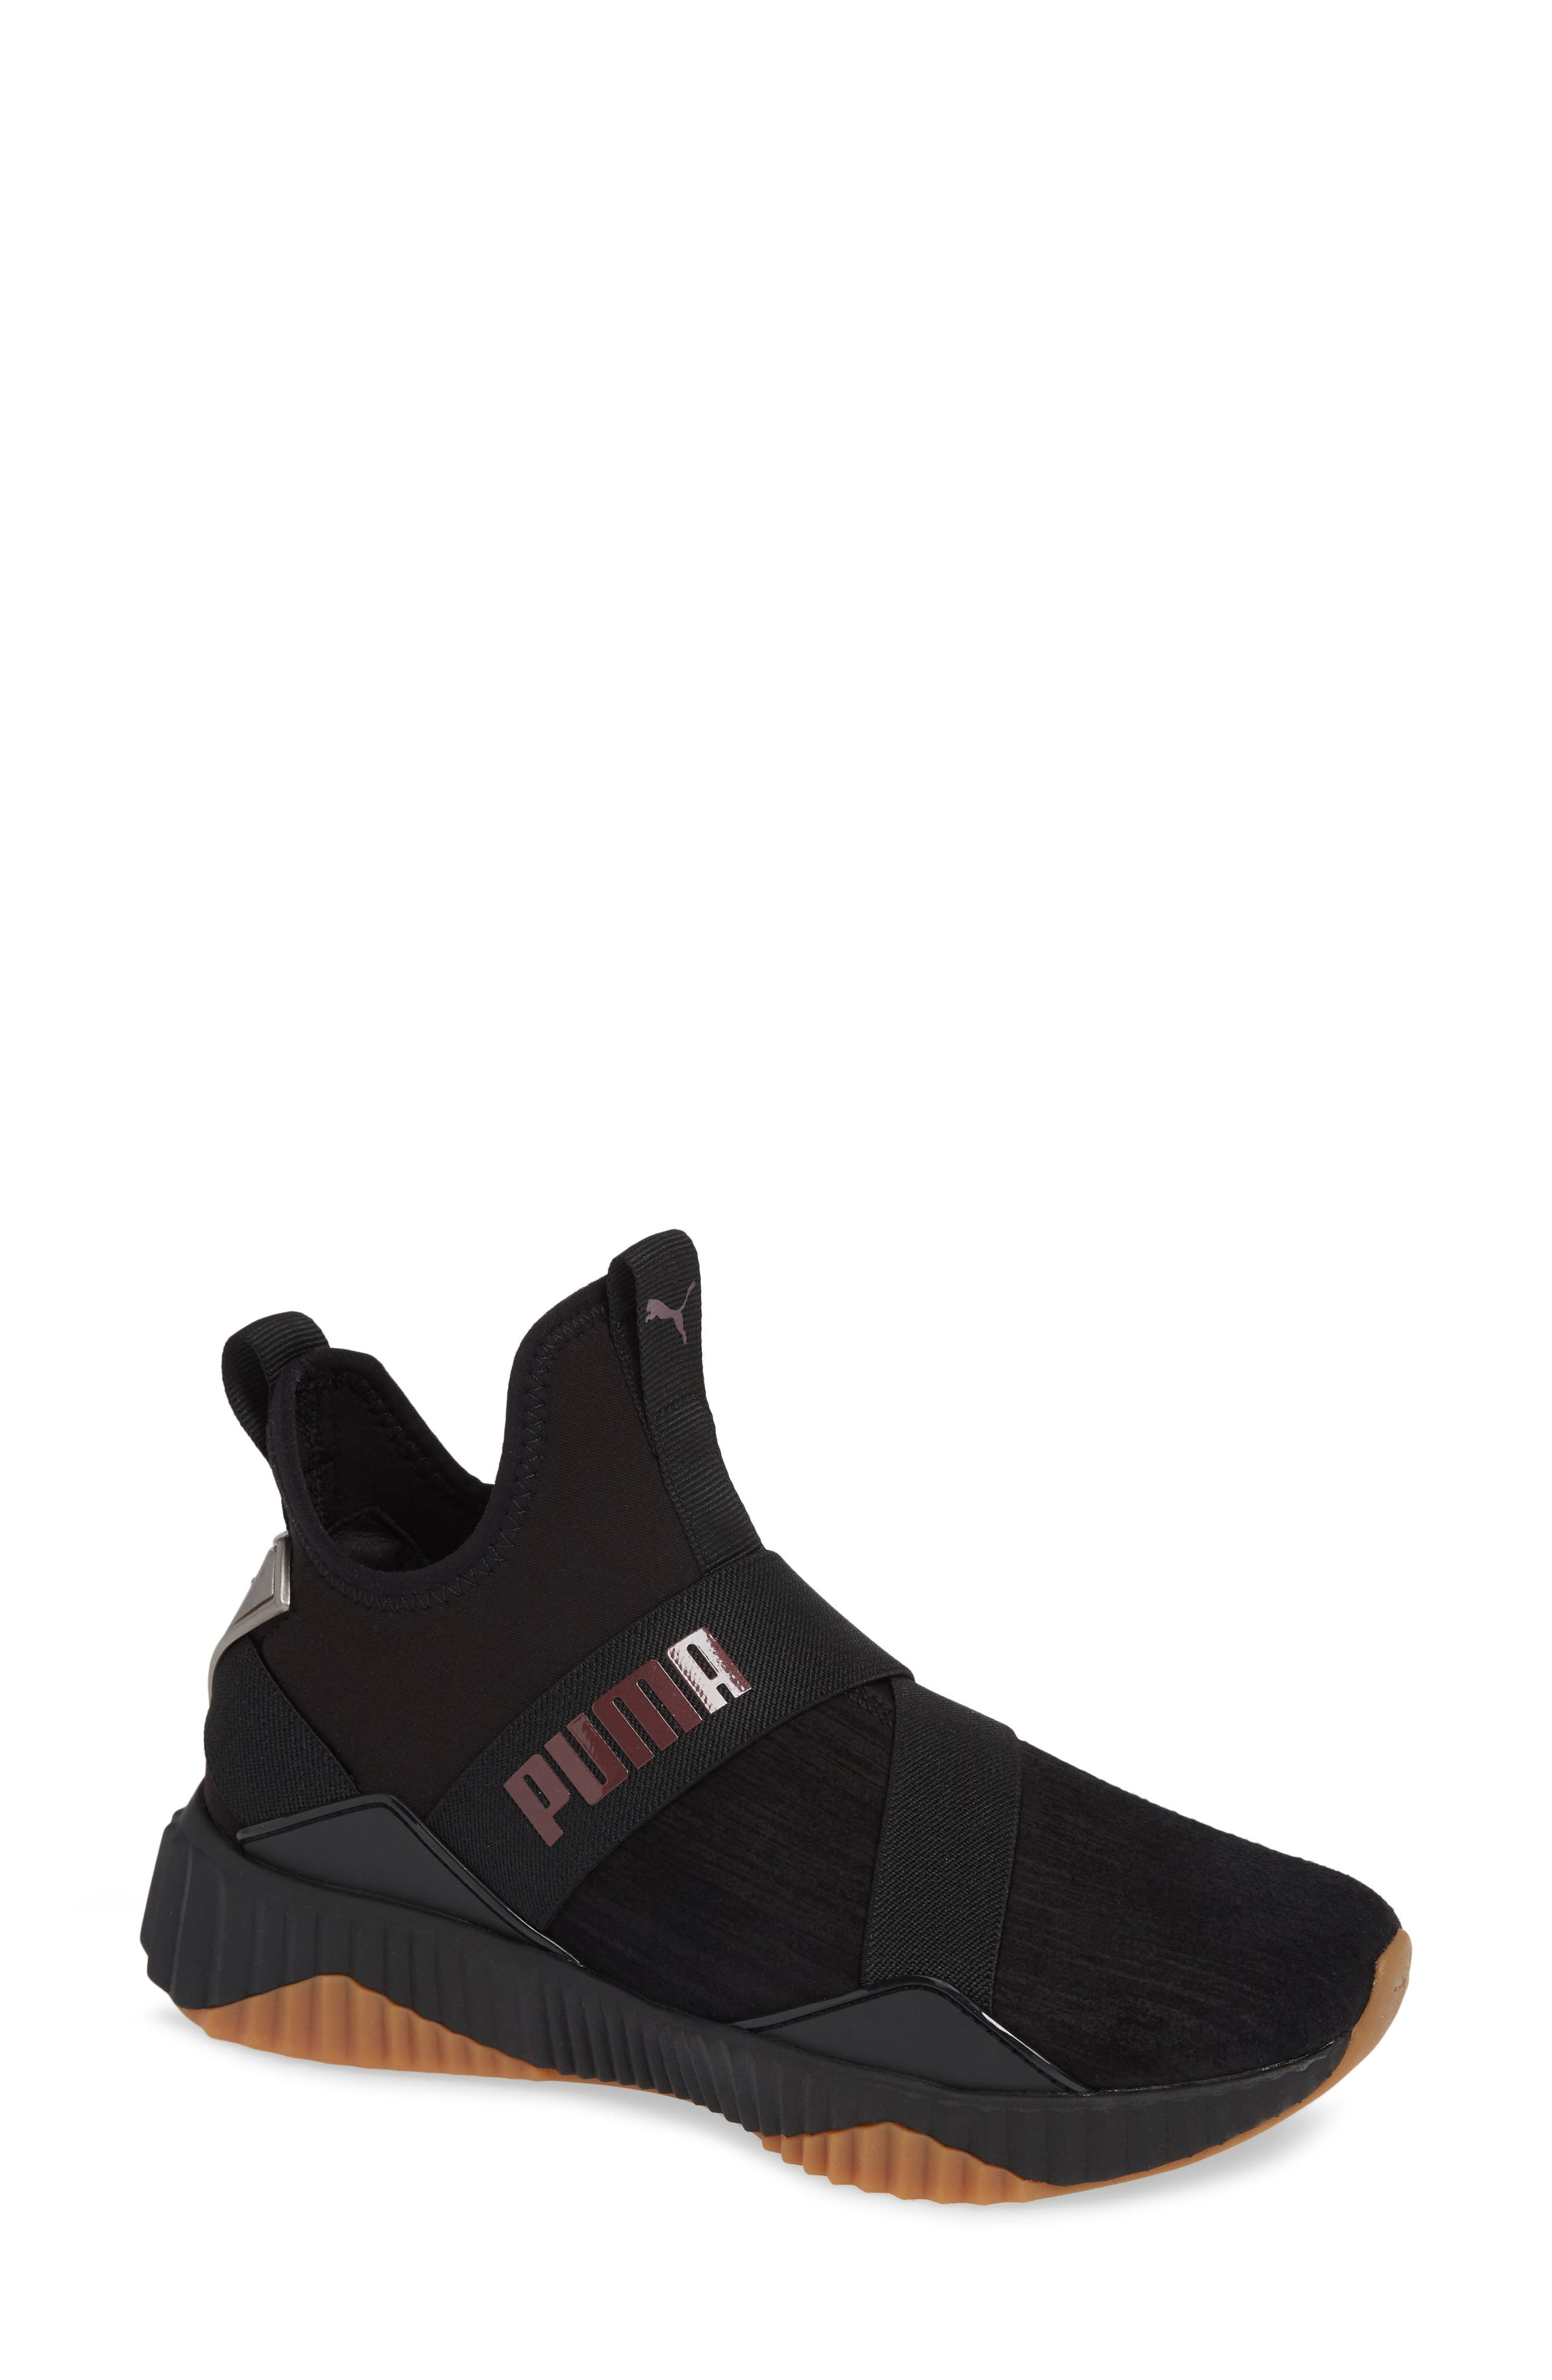 Defy Mid Luxe Sneaker,                             Main thumbnail 1, color,                             PUMA BLACK/ FIG